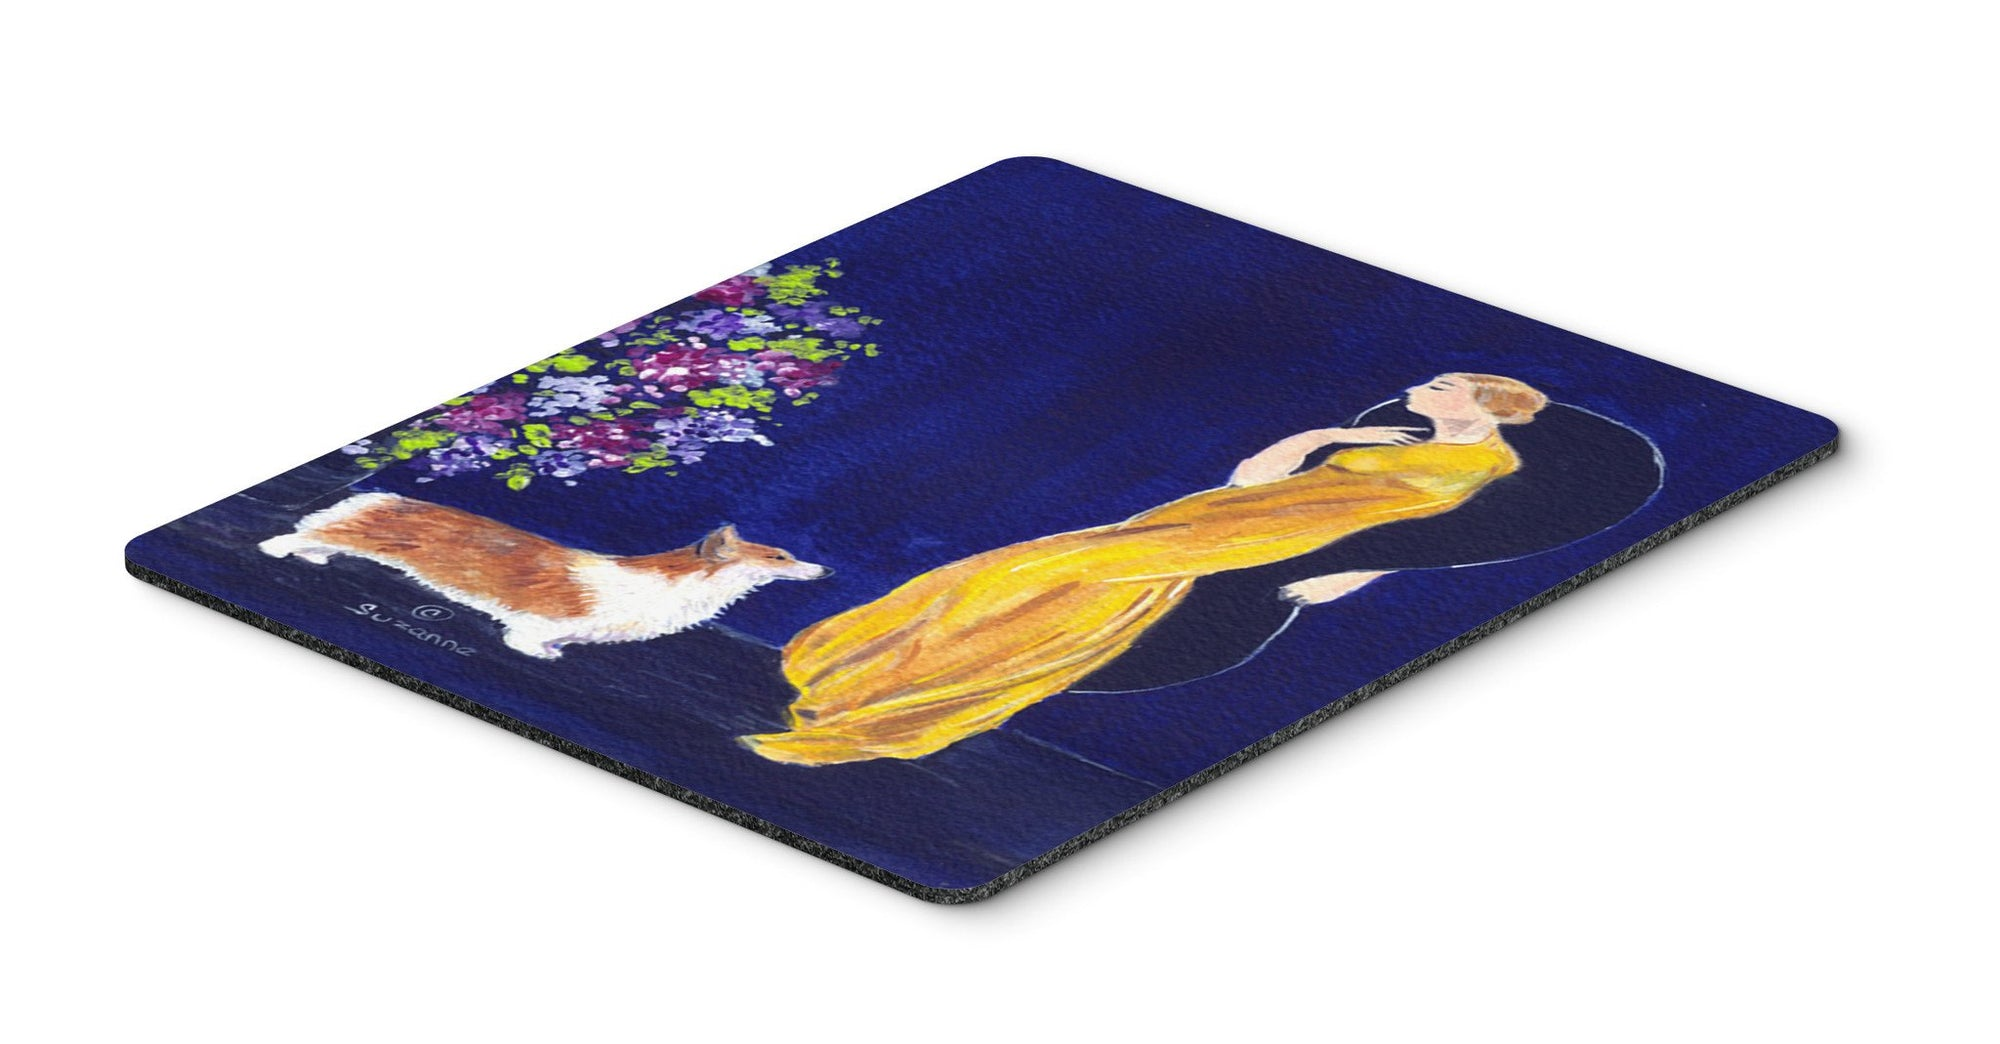 Buy this Lady with her Corgi Mouse Pad, Hot Pad or Trivet